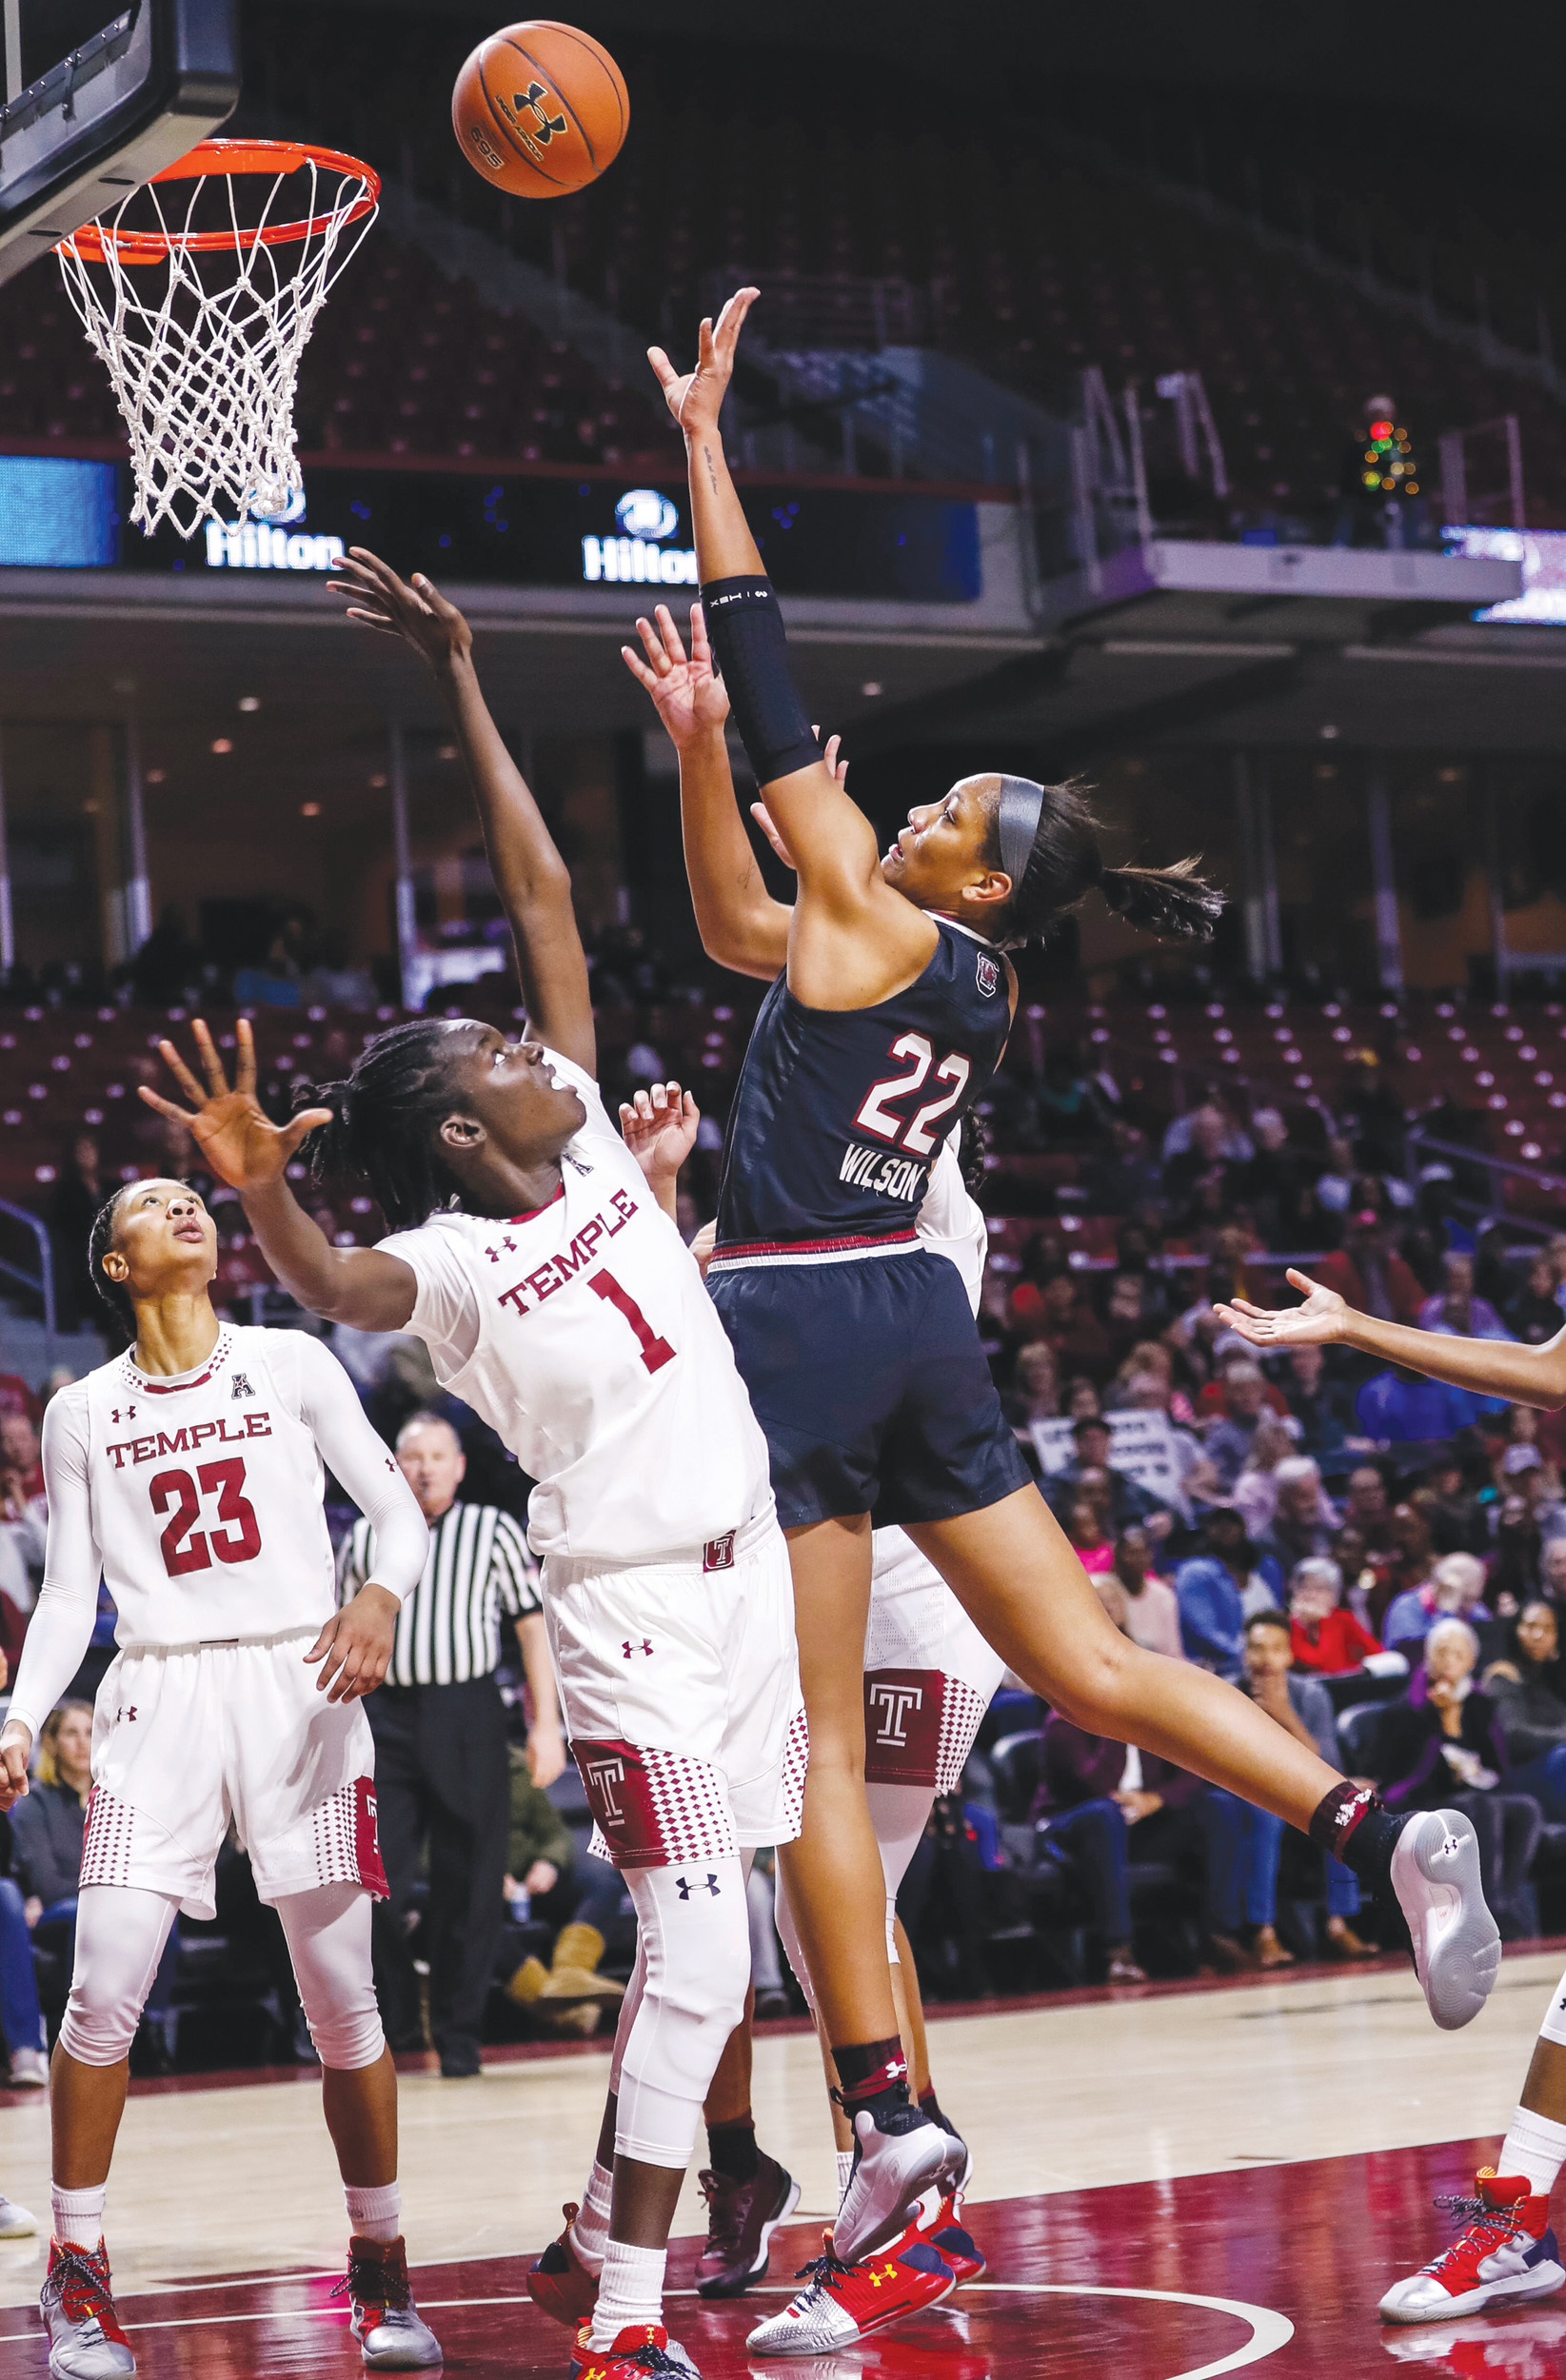 South Carolina's A'ja Wilson (22) puts up a shot over Temple's Lena Niang (1) during the first half of the Gamecocks' 87-60 victory on